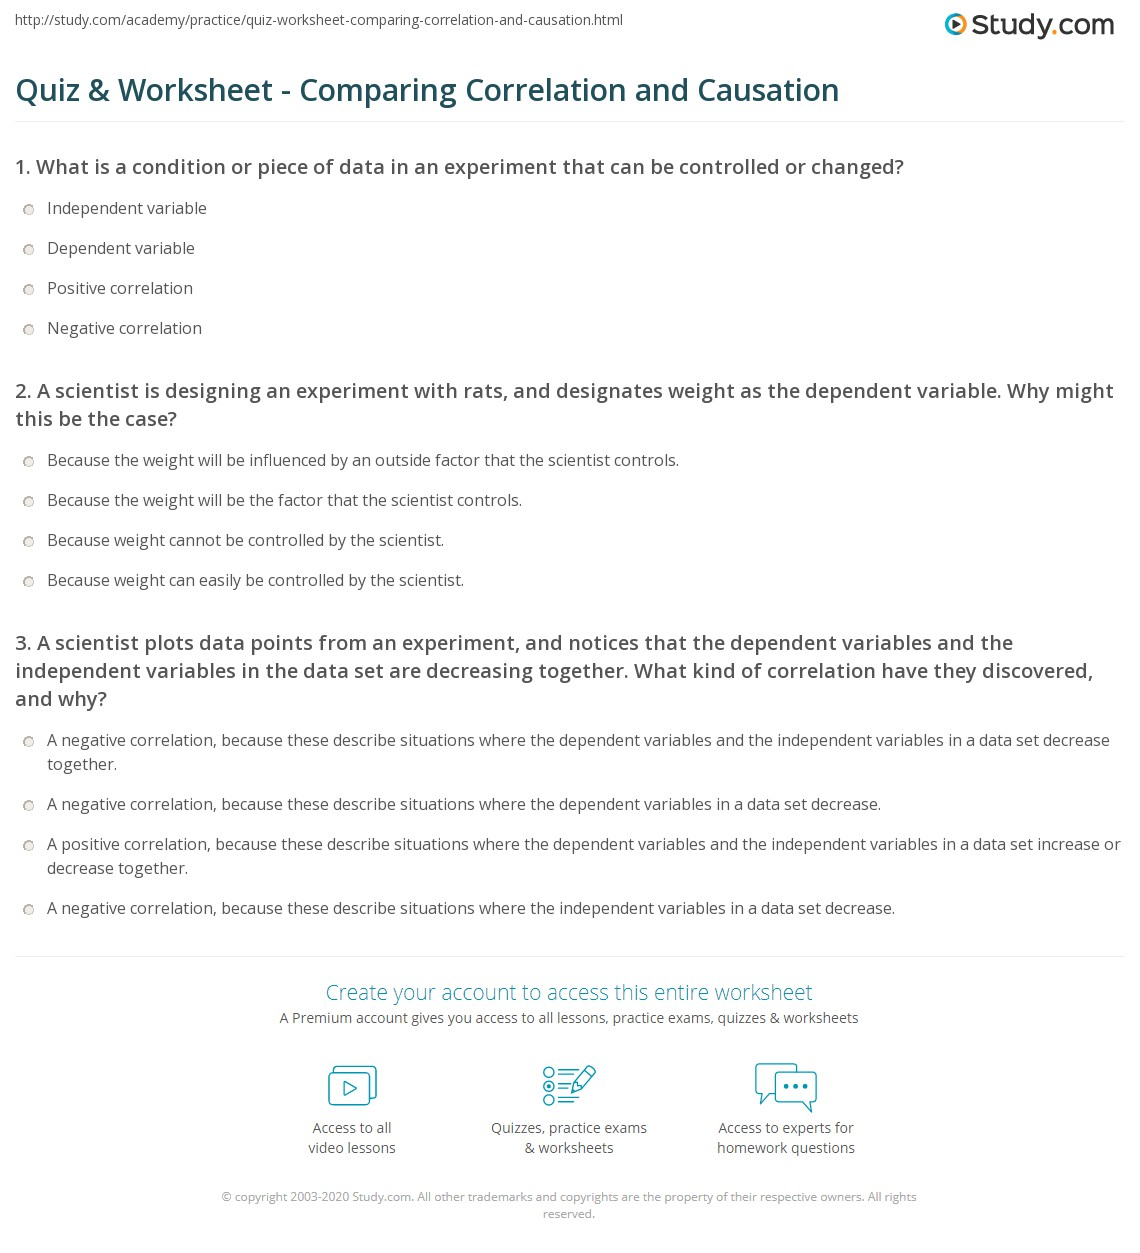 Aldiablosus  Splendid Quiz Amp Worksheet  Comparing Correlation And Causation  Studycom With Hot Print Correlation Vs Causation Differences Amp Definition Worksheet With Nice Cursive Handwriting Worksheets For Adults Also Cause And Effect Worksheet Nd Grade In Addition Variables Worksheet Science And Th Grade Integers Worksheets As Well As Solubility Worksheets Additionally Super Teacher Worksheets Science From Studycom With Aldiablosus  Hot Quiz Amp Worksheet  Comparing Correlation And Causation  Studycom With Nice Print Correlation Vs Causation Differences Amp Definition Worksheet And Splendid Cursive Handwriting Worksheets For Adults Also Cause And Effect Worksheet Nd Grade In Addition Variables Worksheet Science From Studycom